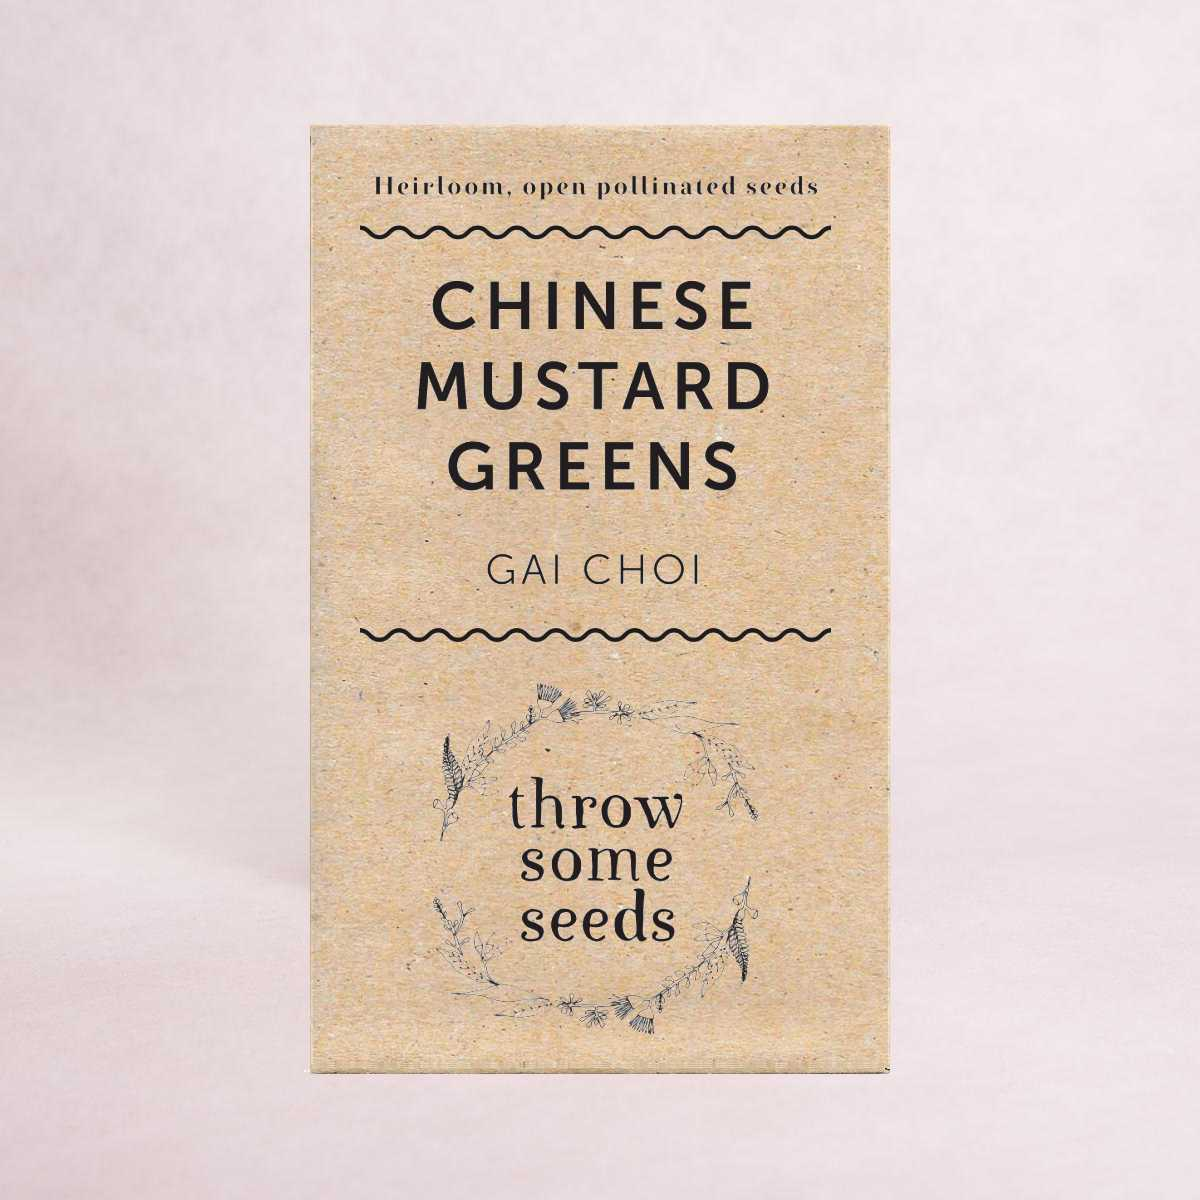 Chinese Mustard Greens (Gai Choi) Seeds - Seeds - Throw Some Seeds - Australian gardening gifts and eco products online!